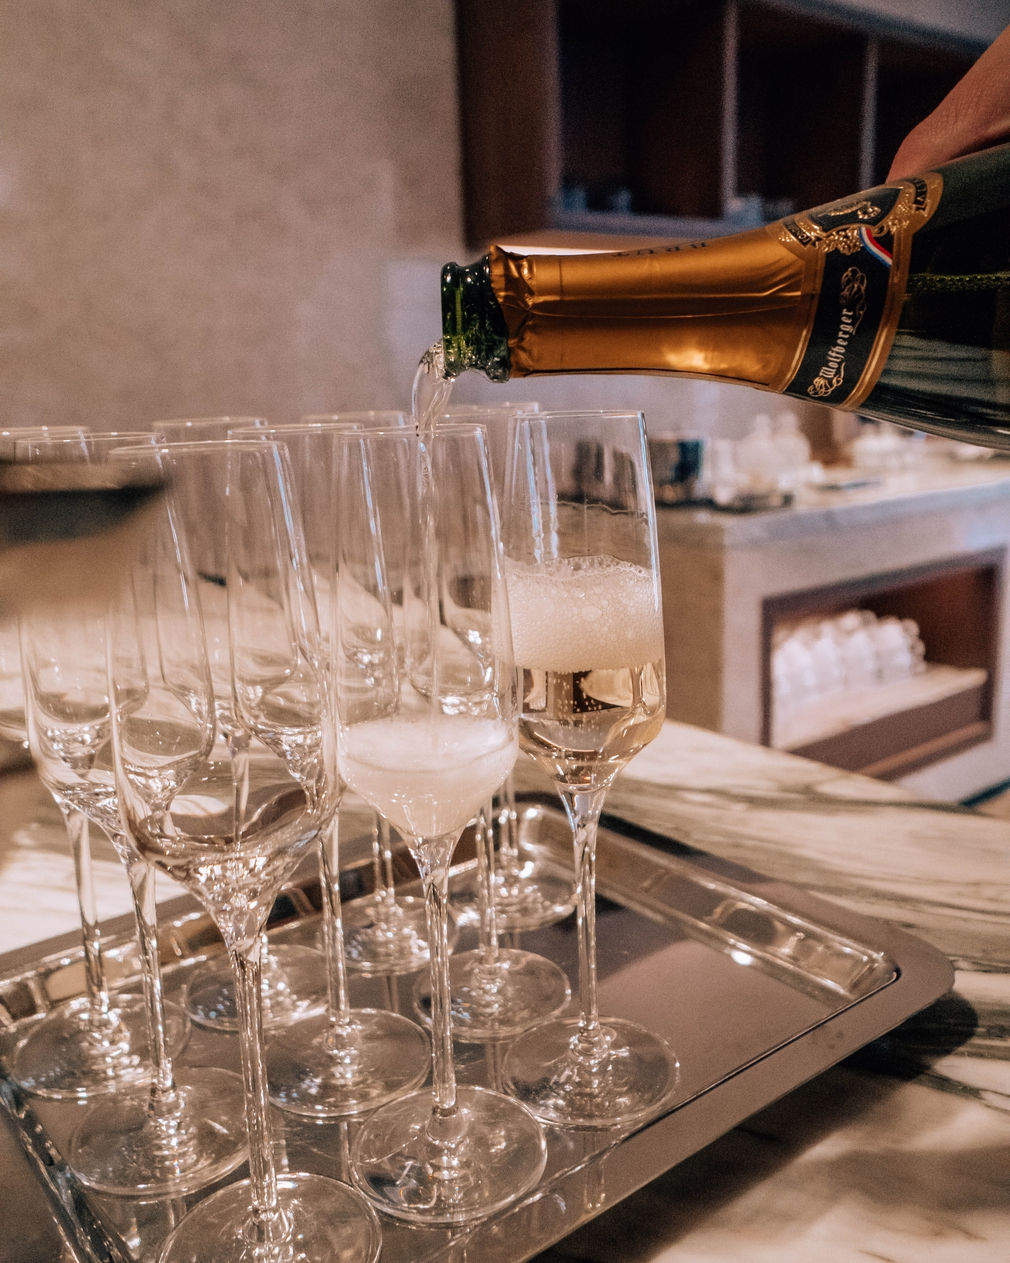 Signiel Seoul Bar 81 has the largest collection of champagne in South Korea